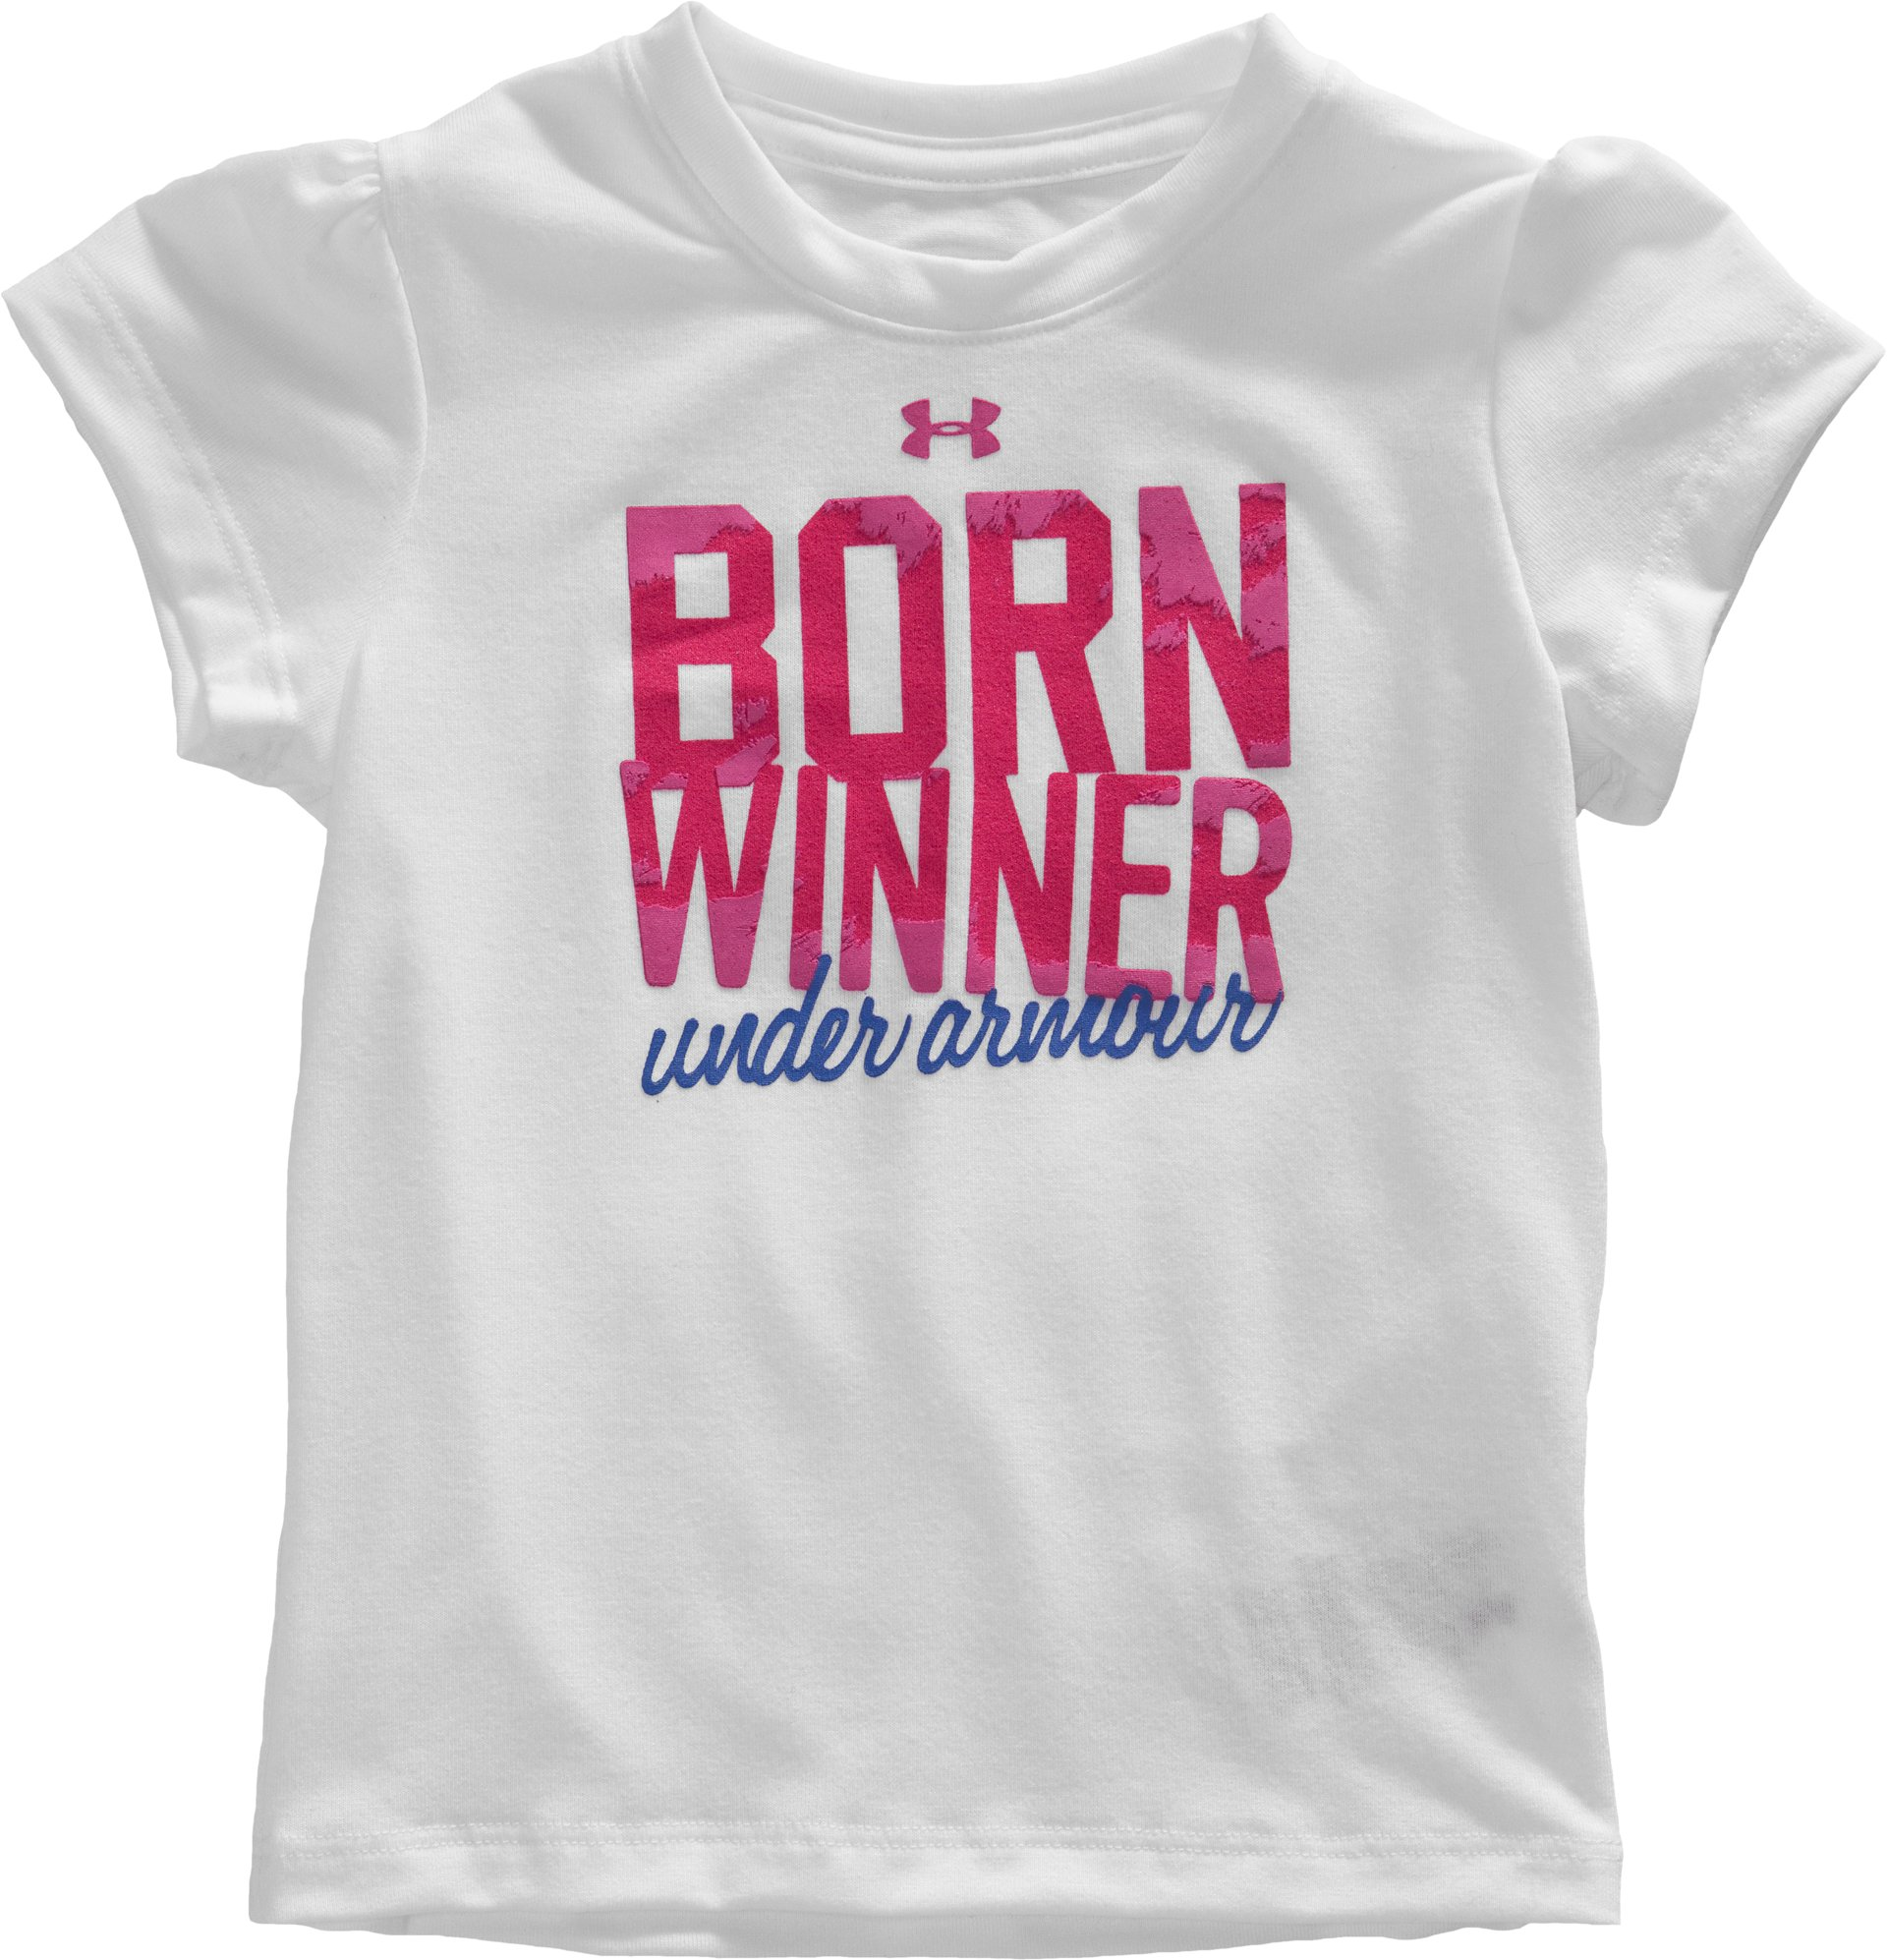 Girls' Toddler Born Winner T-Shirt, White, Laydown